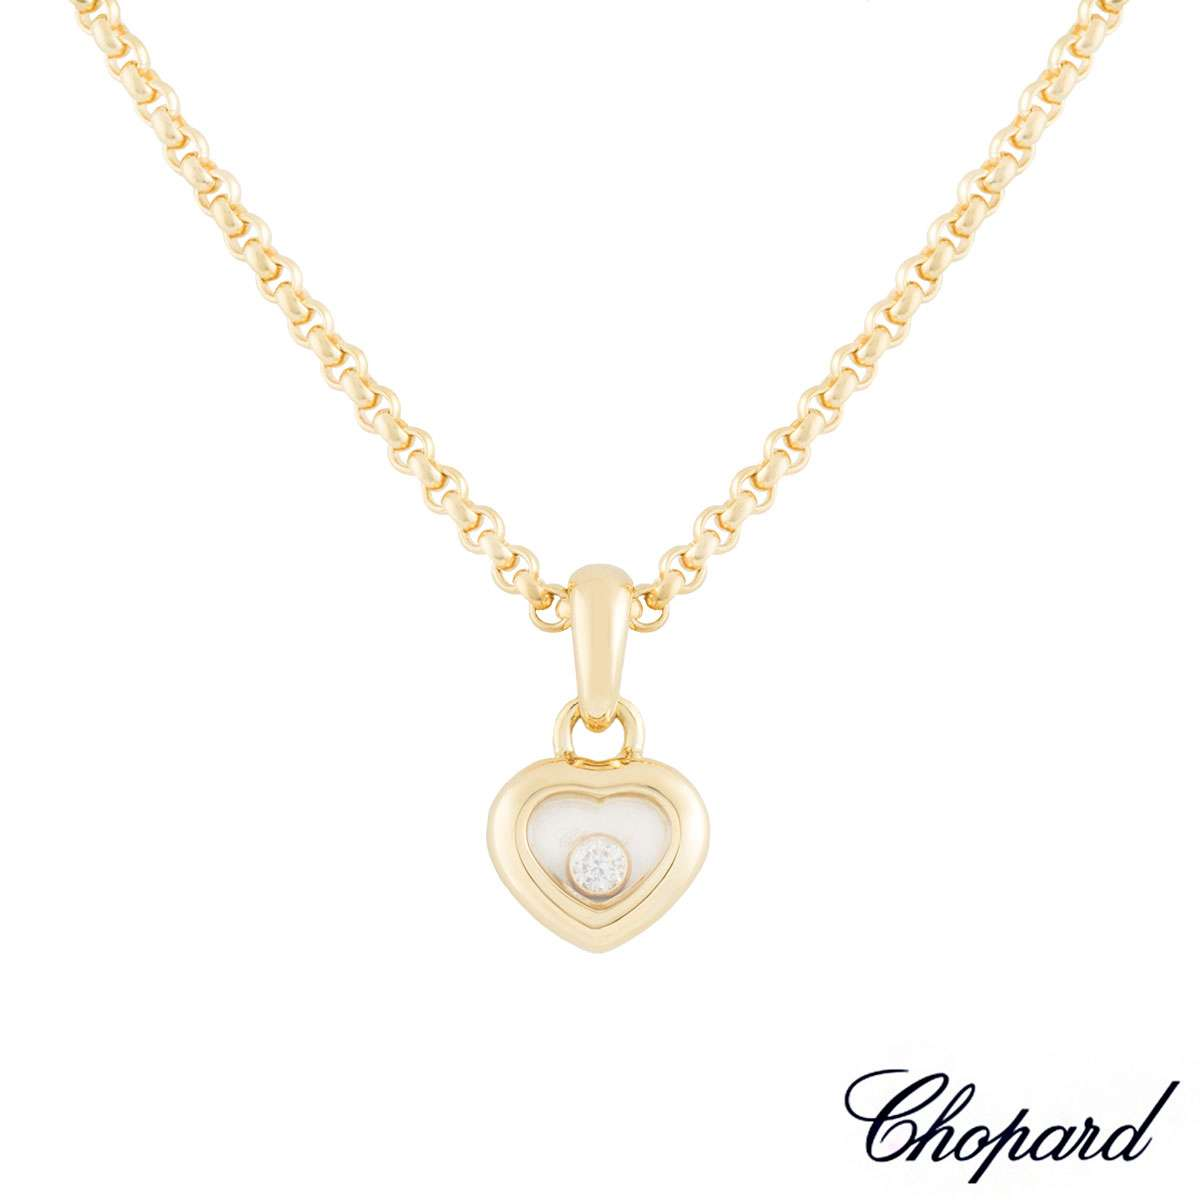 Chopard yellow gold happy diamonds pendant 794854 rich diamonds chopard yellow gold happy diamonds pendant 794854 aloadofball Gallery